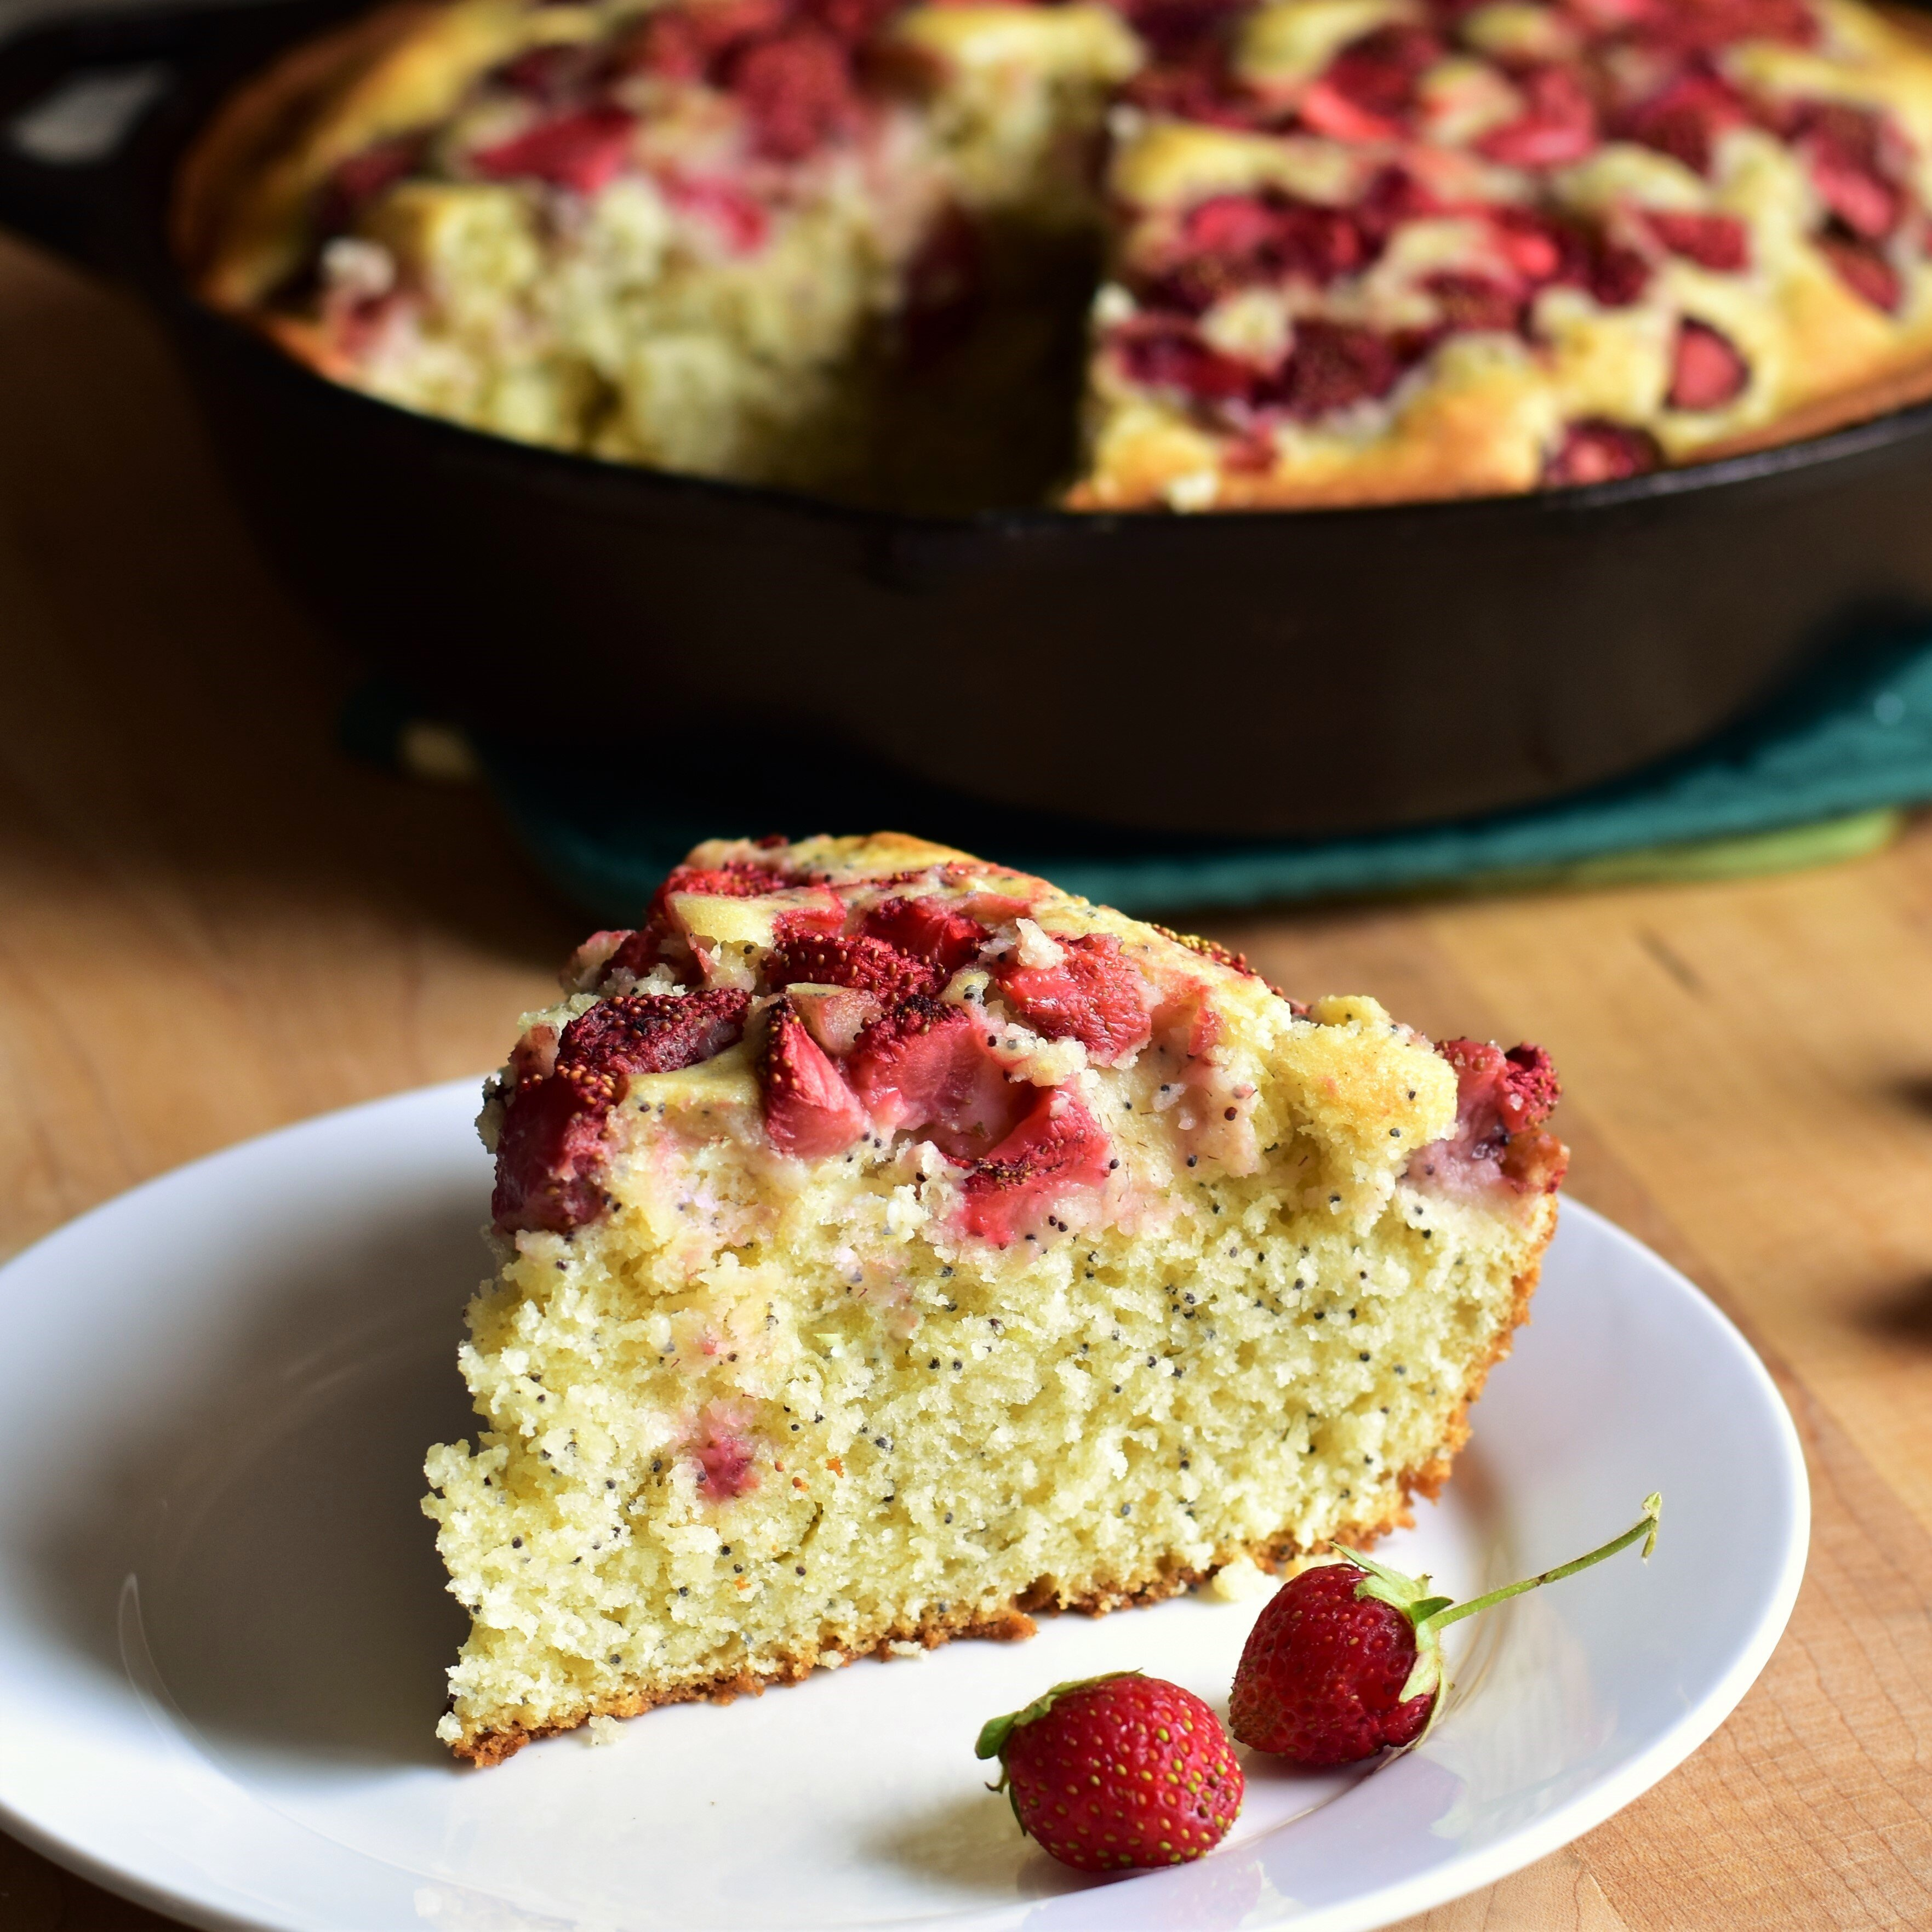 buttermilk poppy seed skillet cake with strawberries